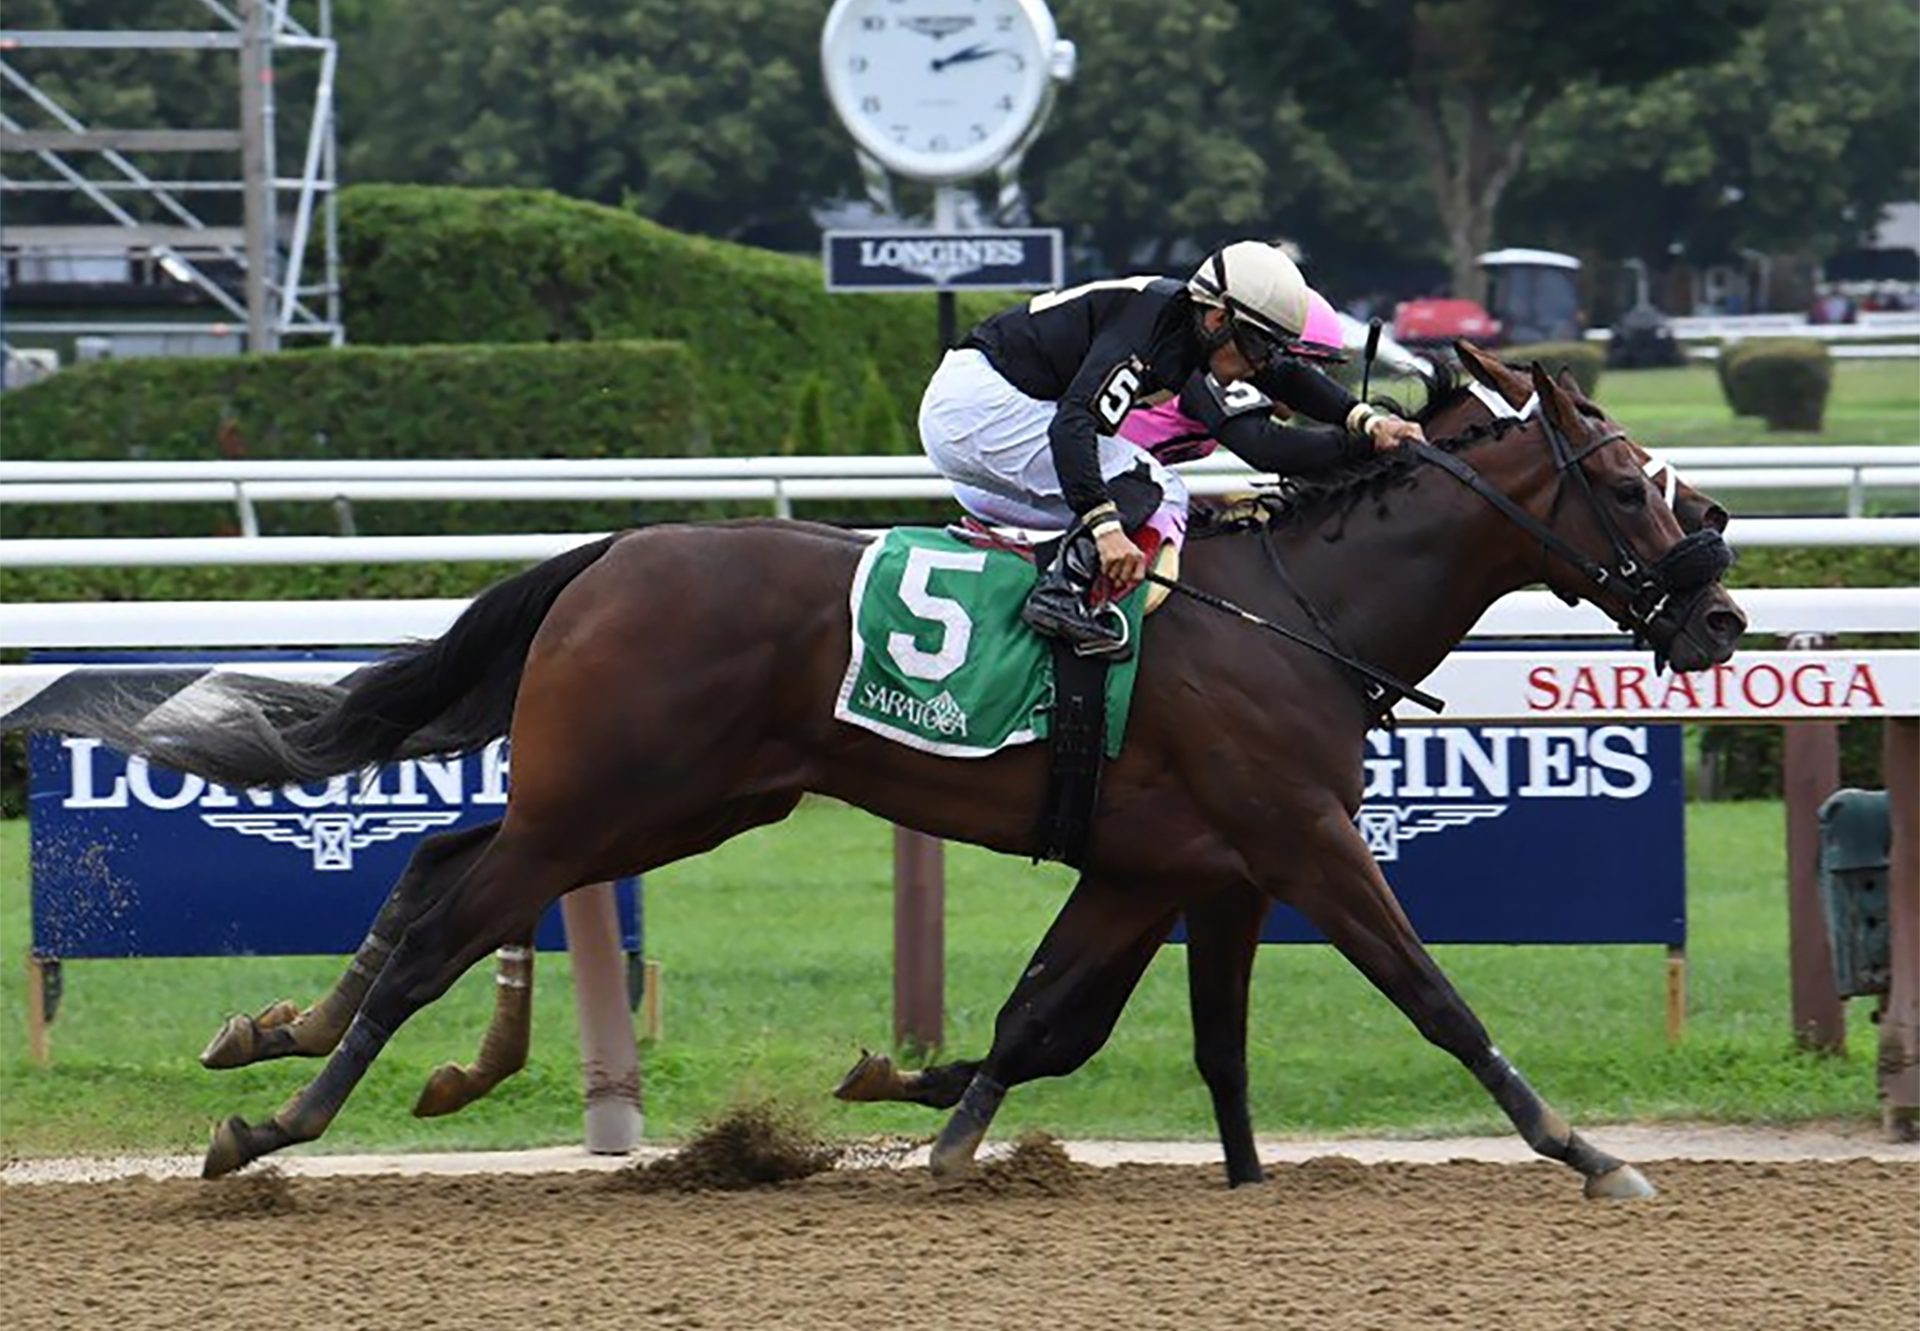 My Italian Rabbi (Competitive Edge) winning the Stillwater Stakes at Saratoga